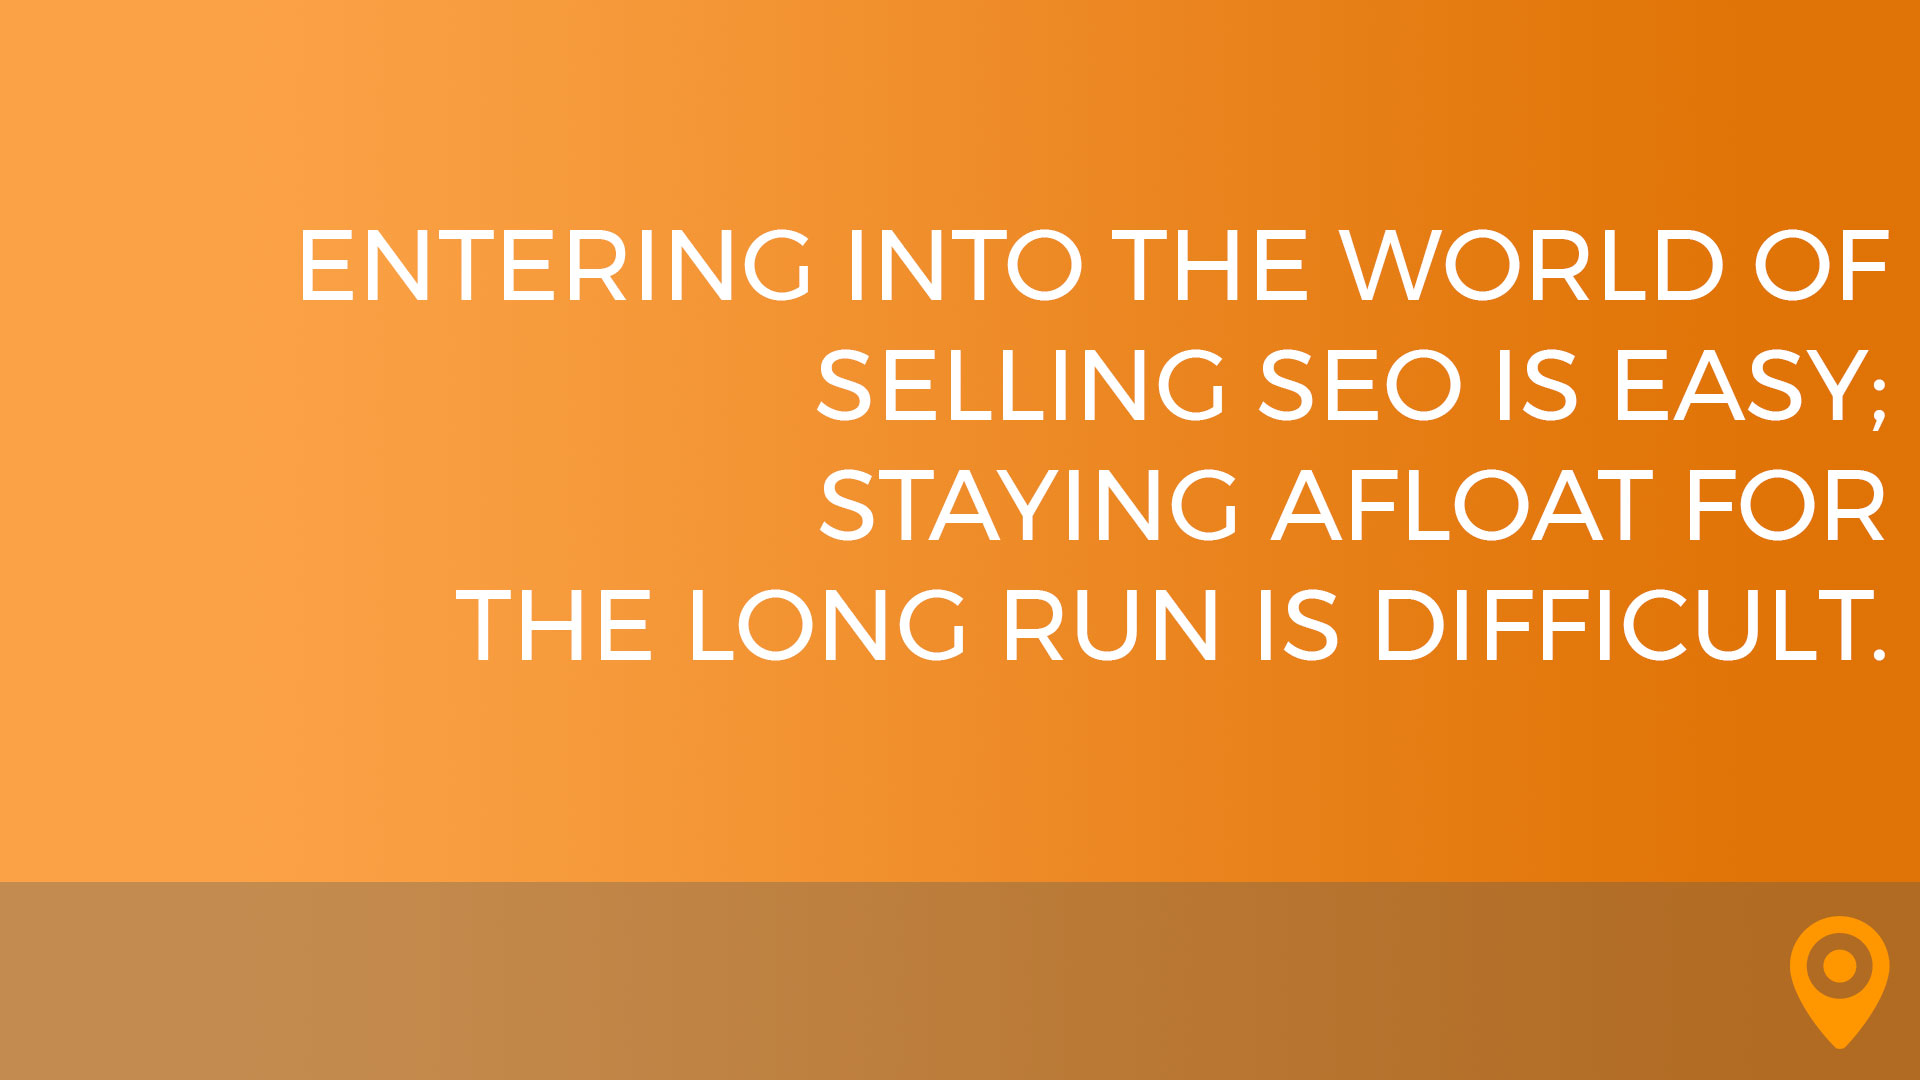 Entering into the world of selling SEO is easy; staying afloat for the long run is difficult.